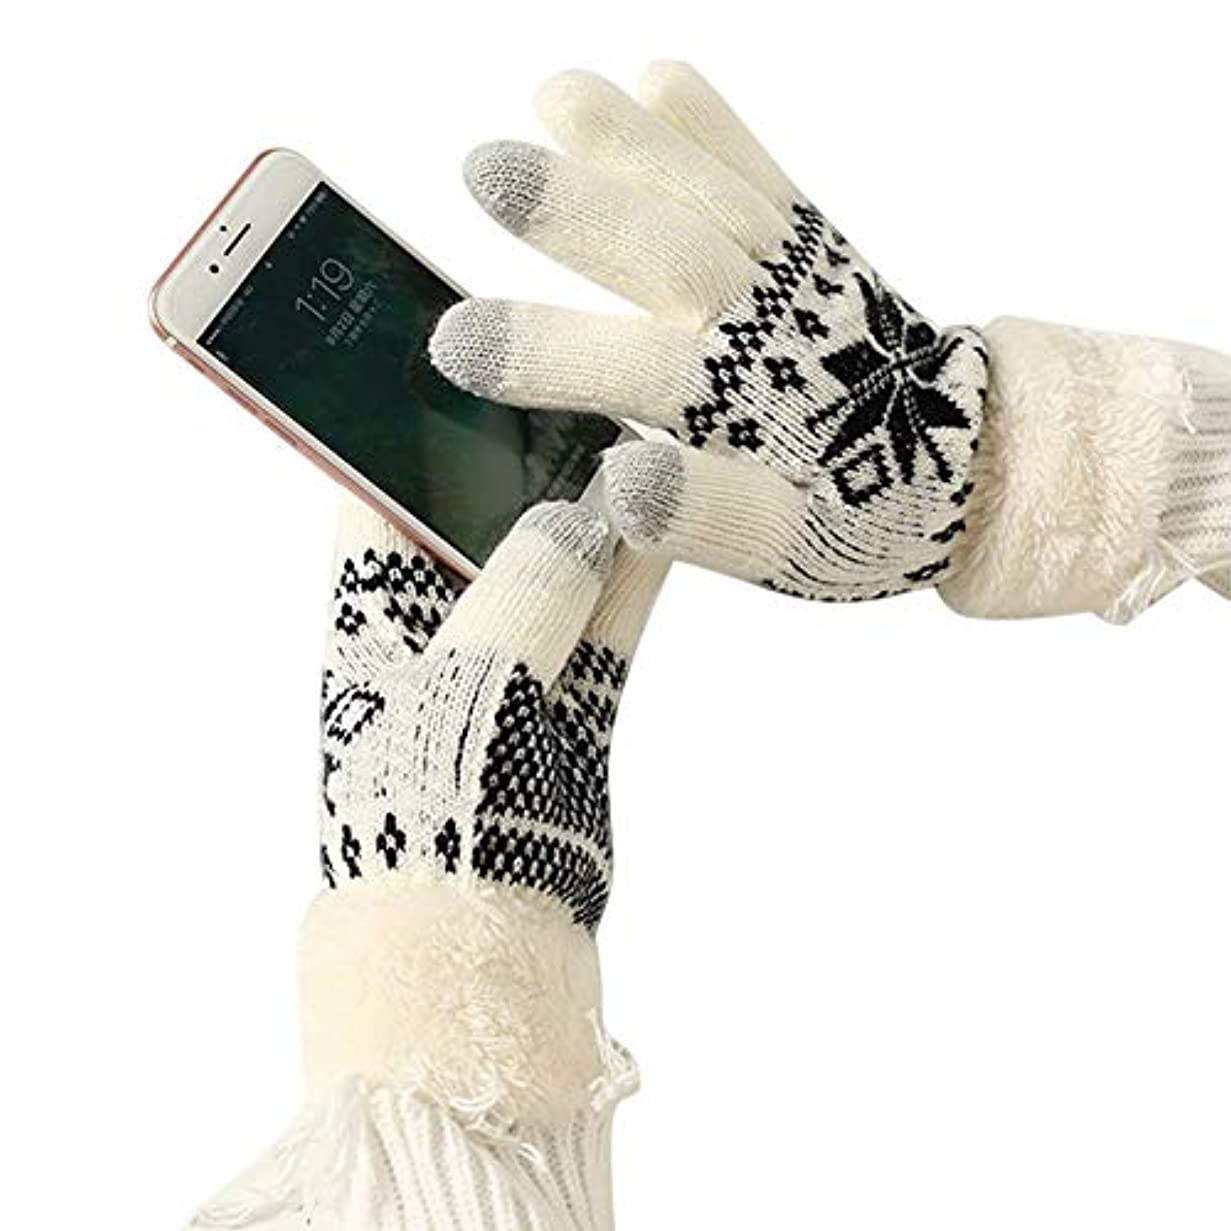 恐竜発音するチャームTengfly Women Touchscreen Gloves, Winter Warm Knit Gloves,Soft Extra-Warm Fleece Touchscreen Gloves,Snow Flower...